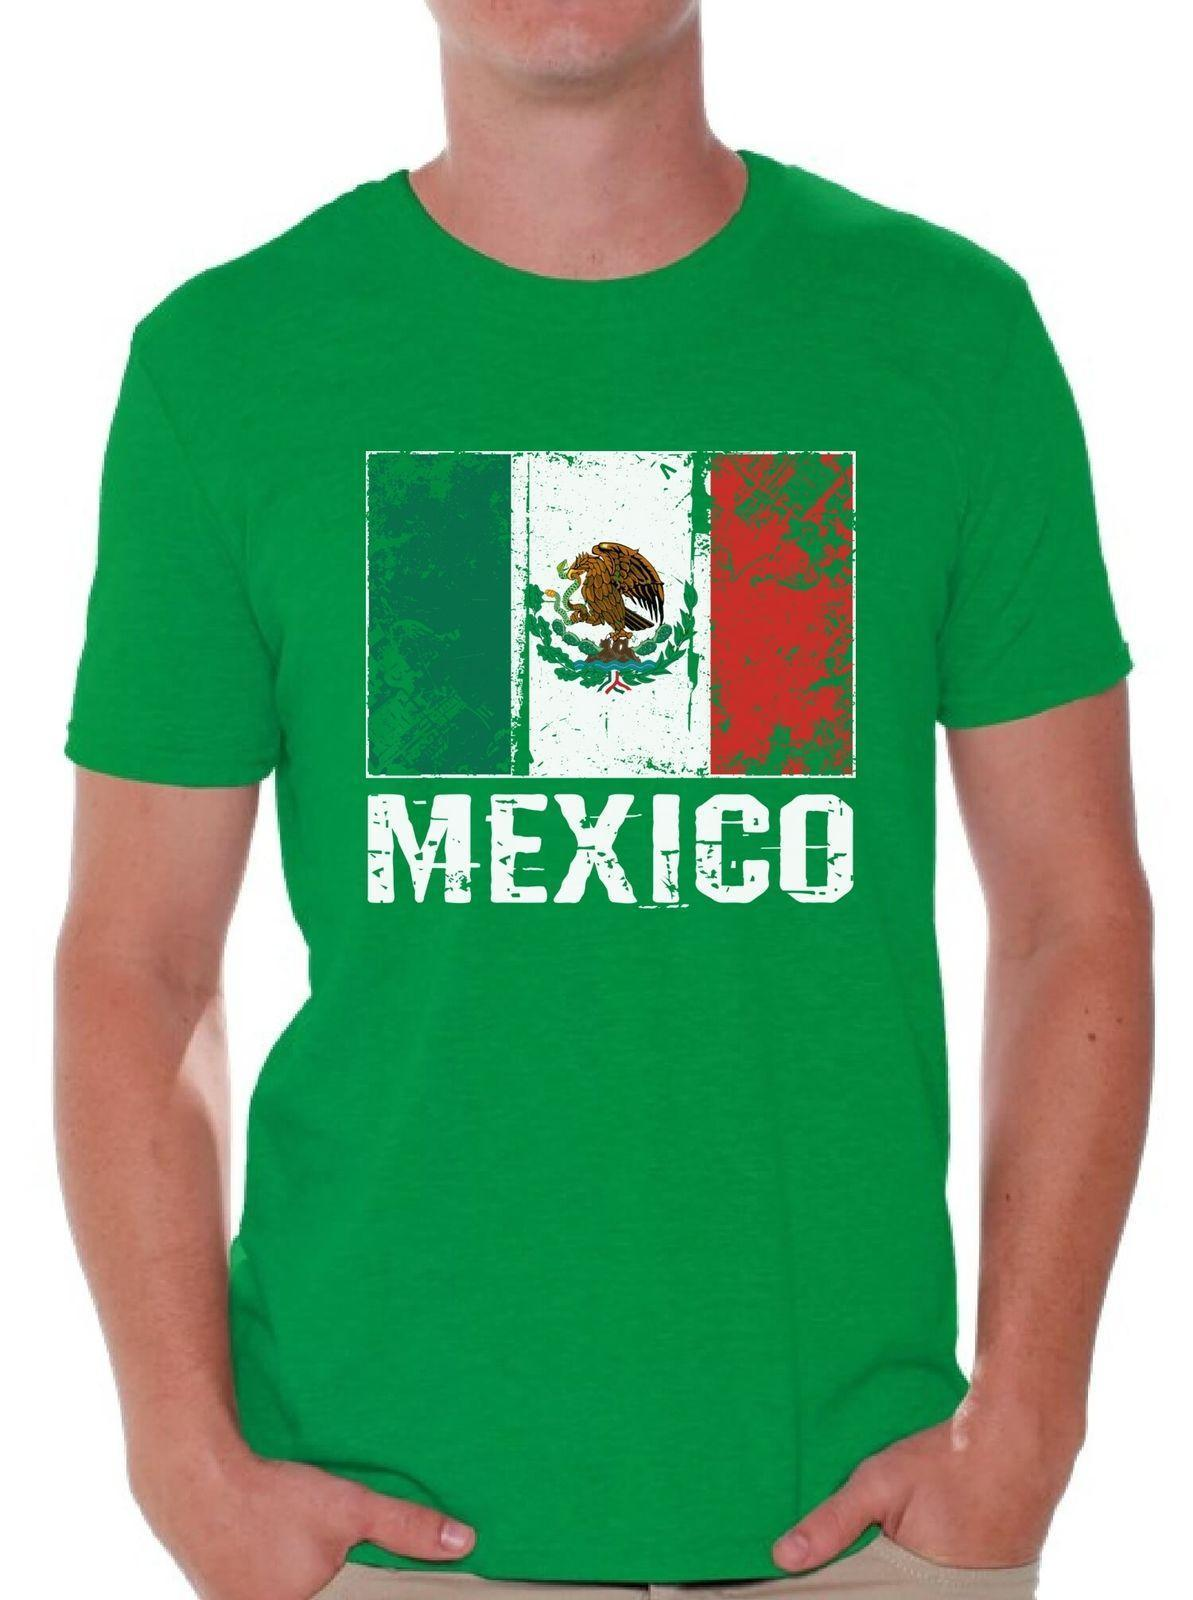 88502a2a881 Mexico T Shirt Mexico Shirt 2018 Mexico Soccer Shirts For Men Fun Shirts T  Shirts Online Shopping From Yuxin002